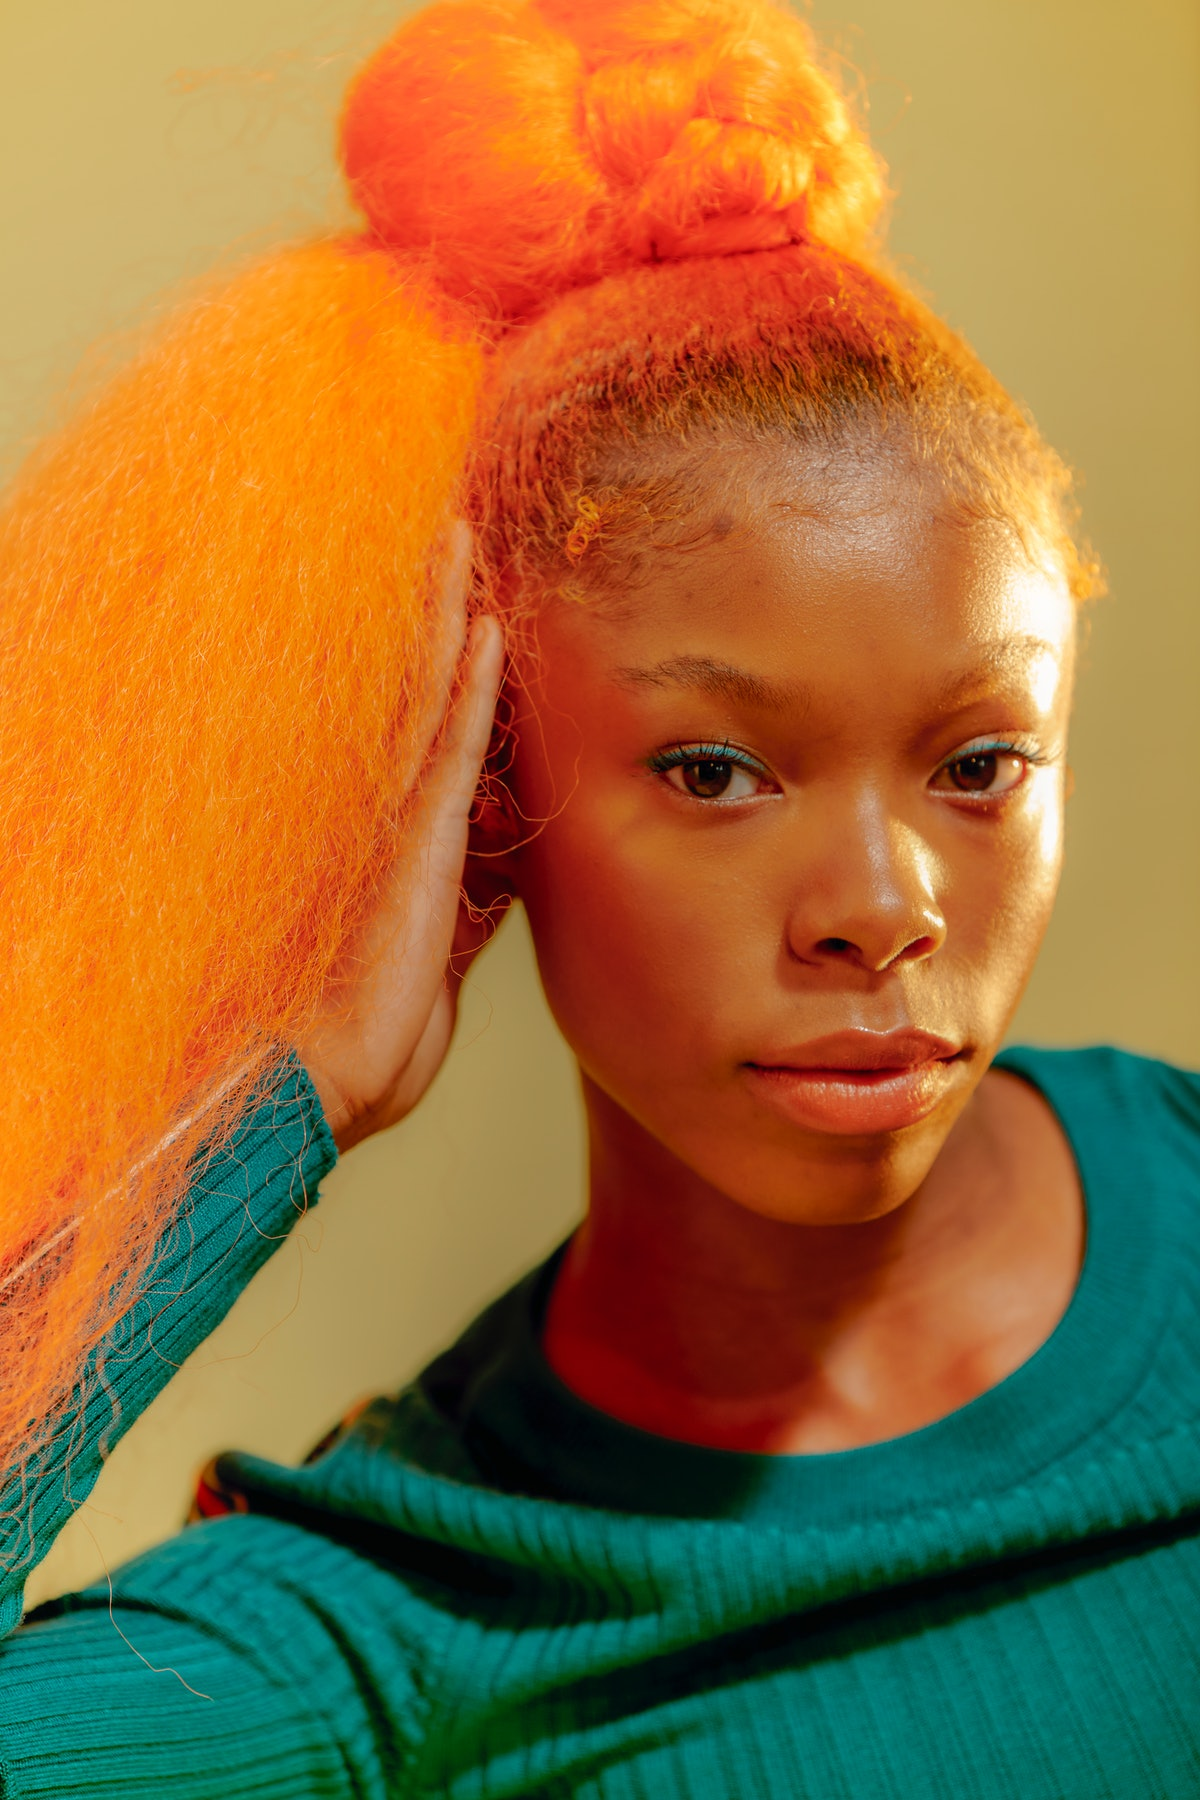 Intense young woman with orange hair and emotional Cancer qualities.